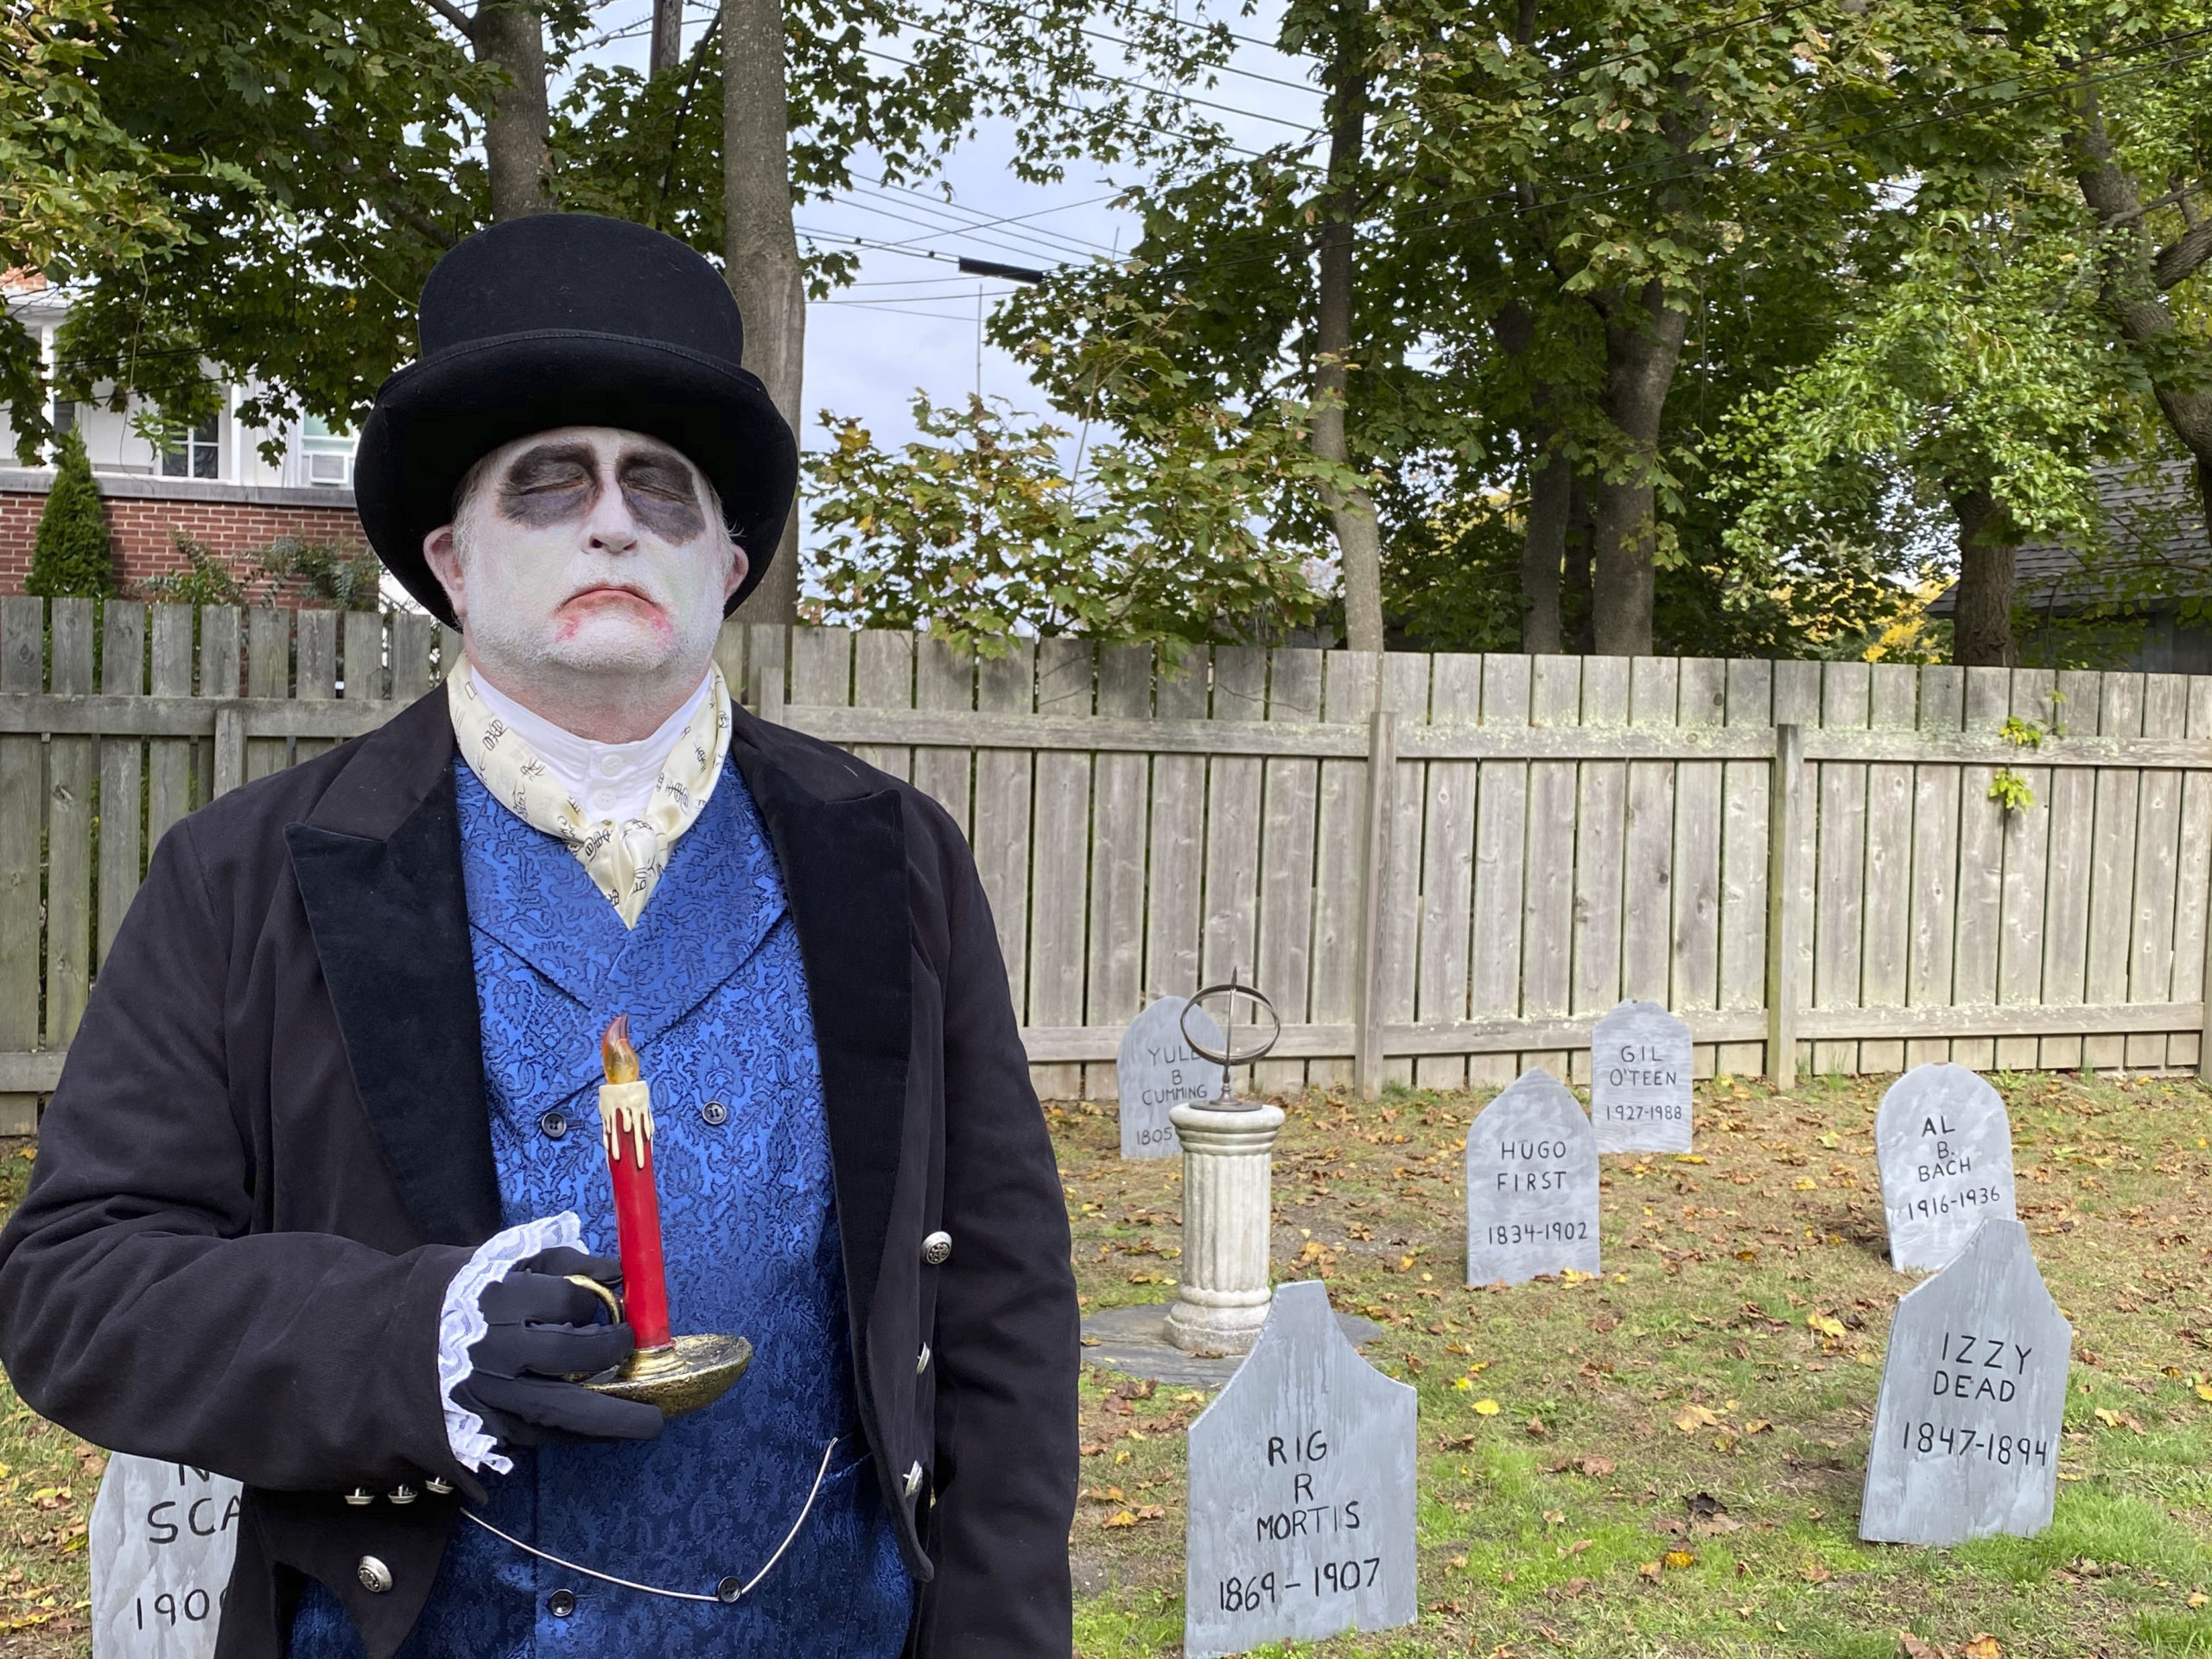 The Haunted Village at the Southampton History Museum on Saturday. The grounds of the Rogers Mansion are decorated for Halloween and are inhabited by witches, ghouls and even a plague doctor. The Haunted Village will be opened on Saturday October 31 from 2 to 4 p.m. Visitors are encouraged to wear their costumes. Reservations required with timed entrances for a 20 minute tour. Limited to 100 people at one time, only family groups of up to 6 allowed per reservation. Children must be accompanied by an adult with a reservation. Facemasks required and social distancing strictly enforced. Call (631) 283-2494 or visit southamptonhistory.org for more information. DANA SHAW